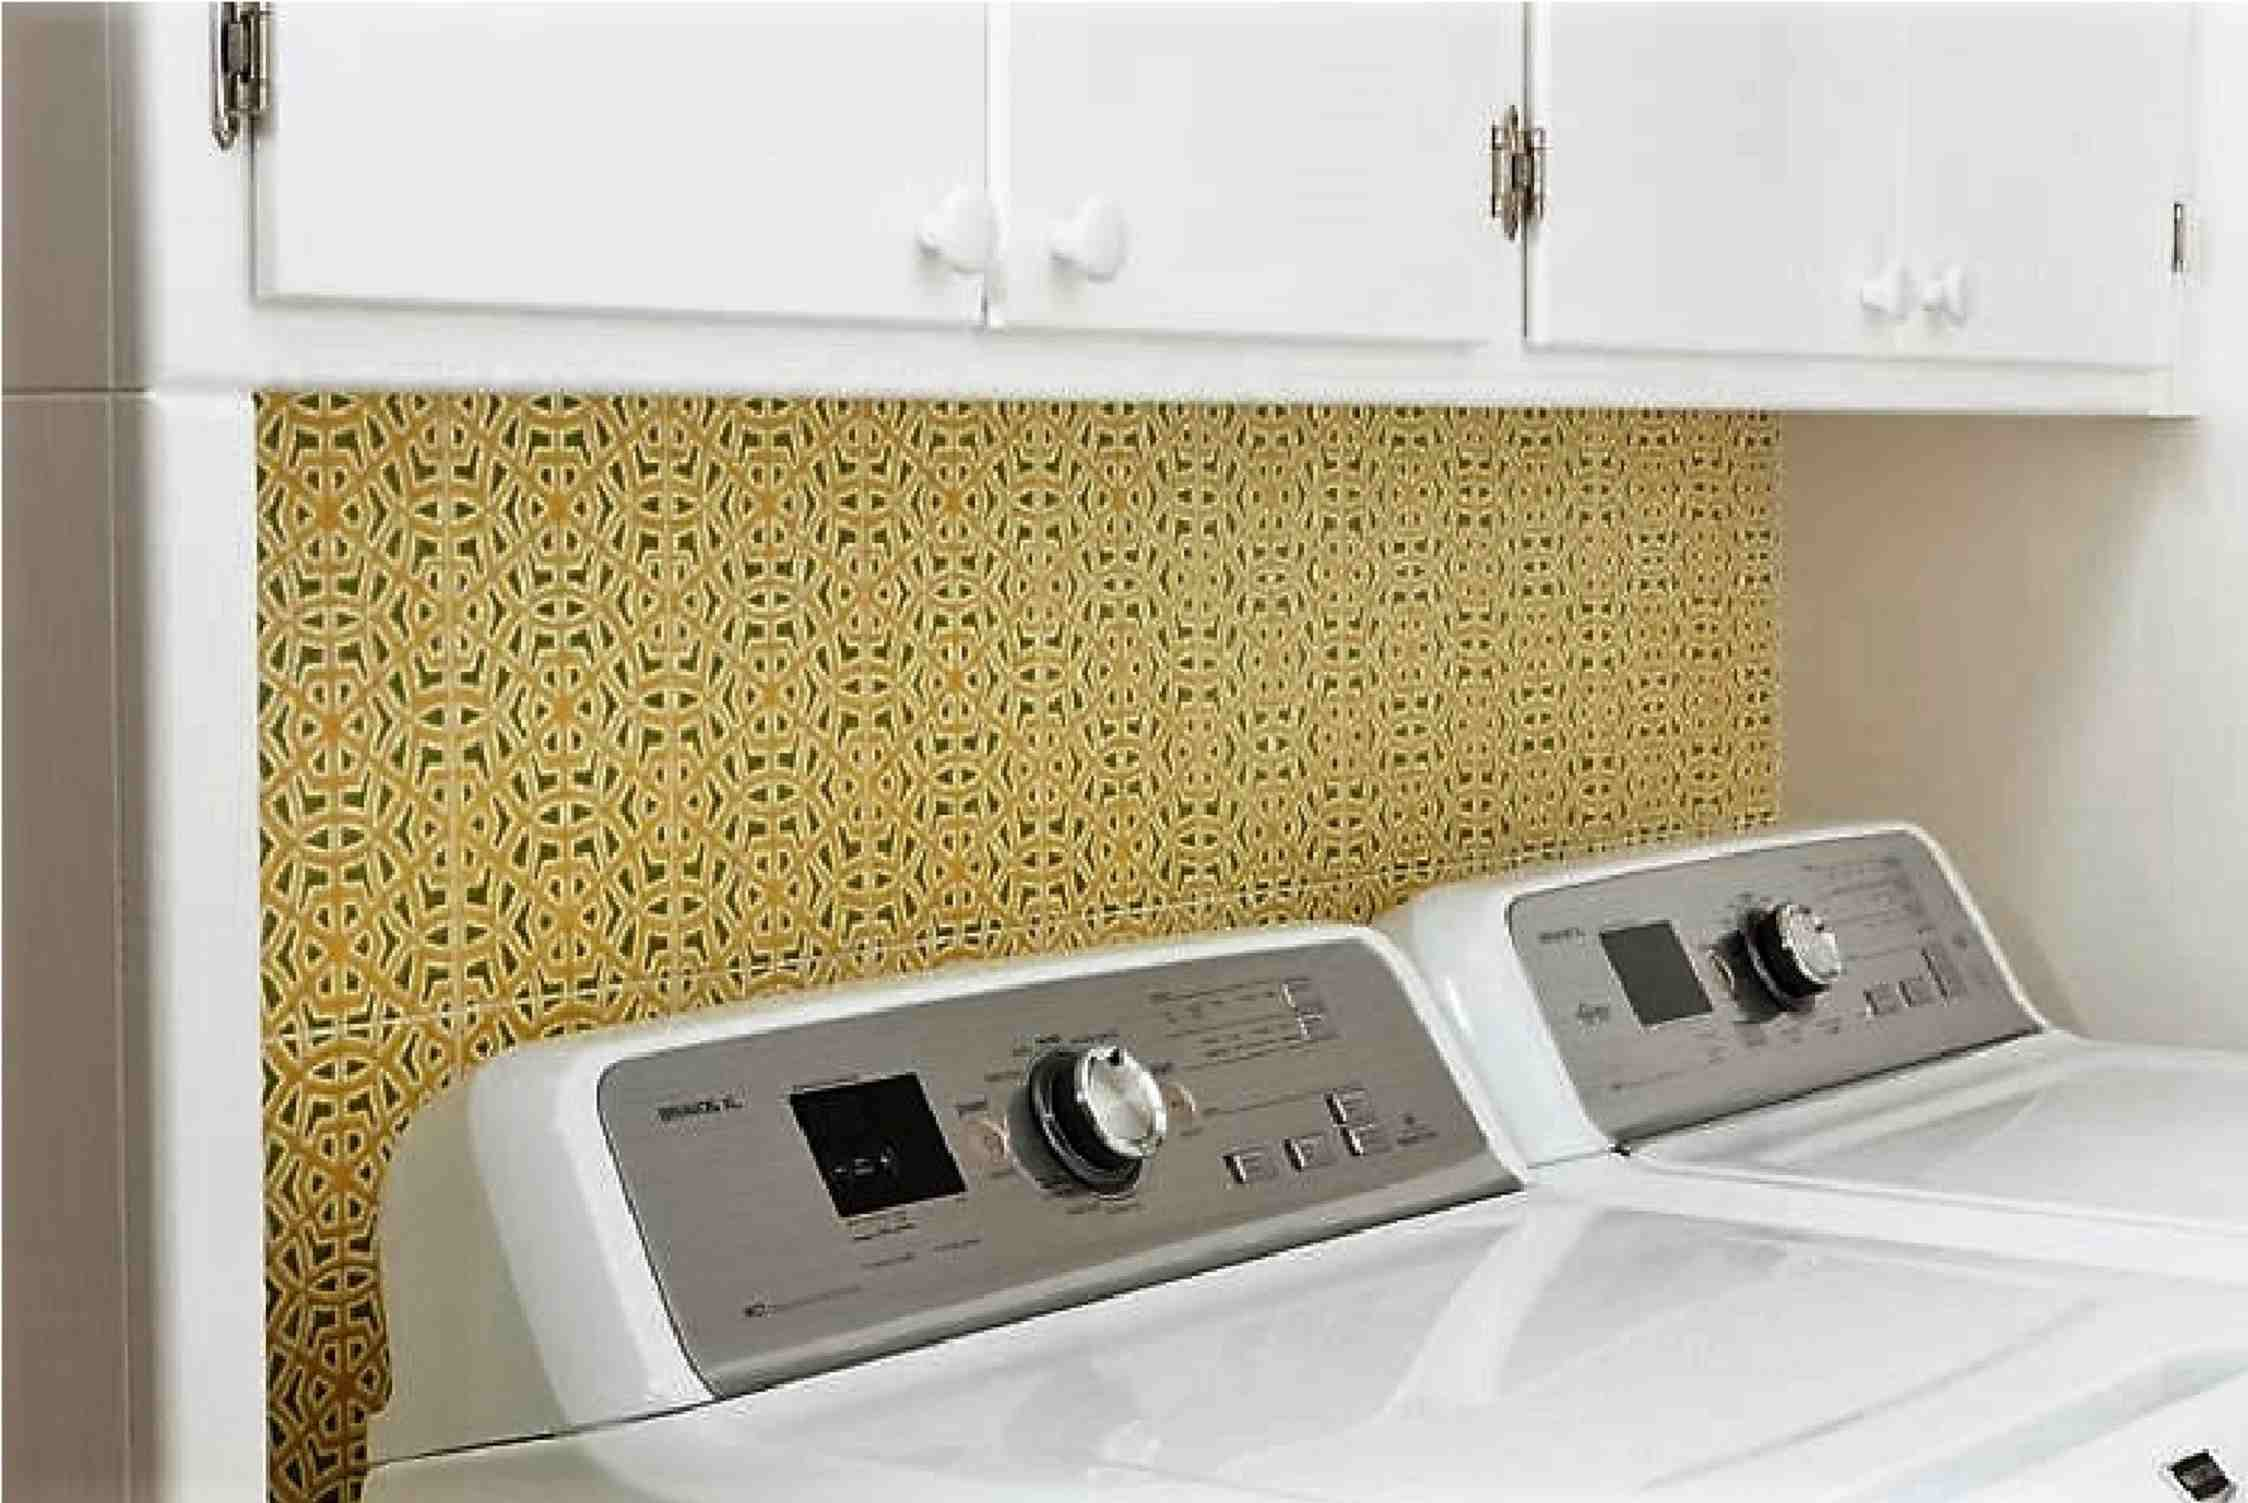 Awesome Laundry Room Decorations For The Wall Inspiration - The Wall ...